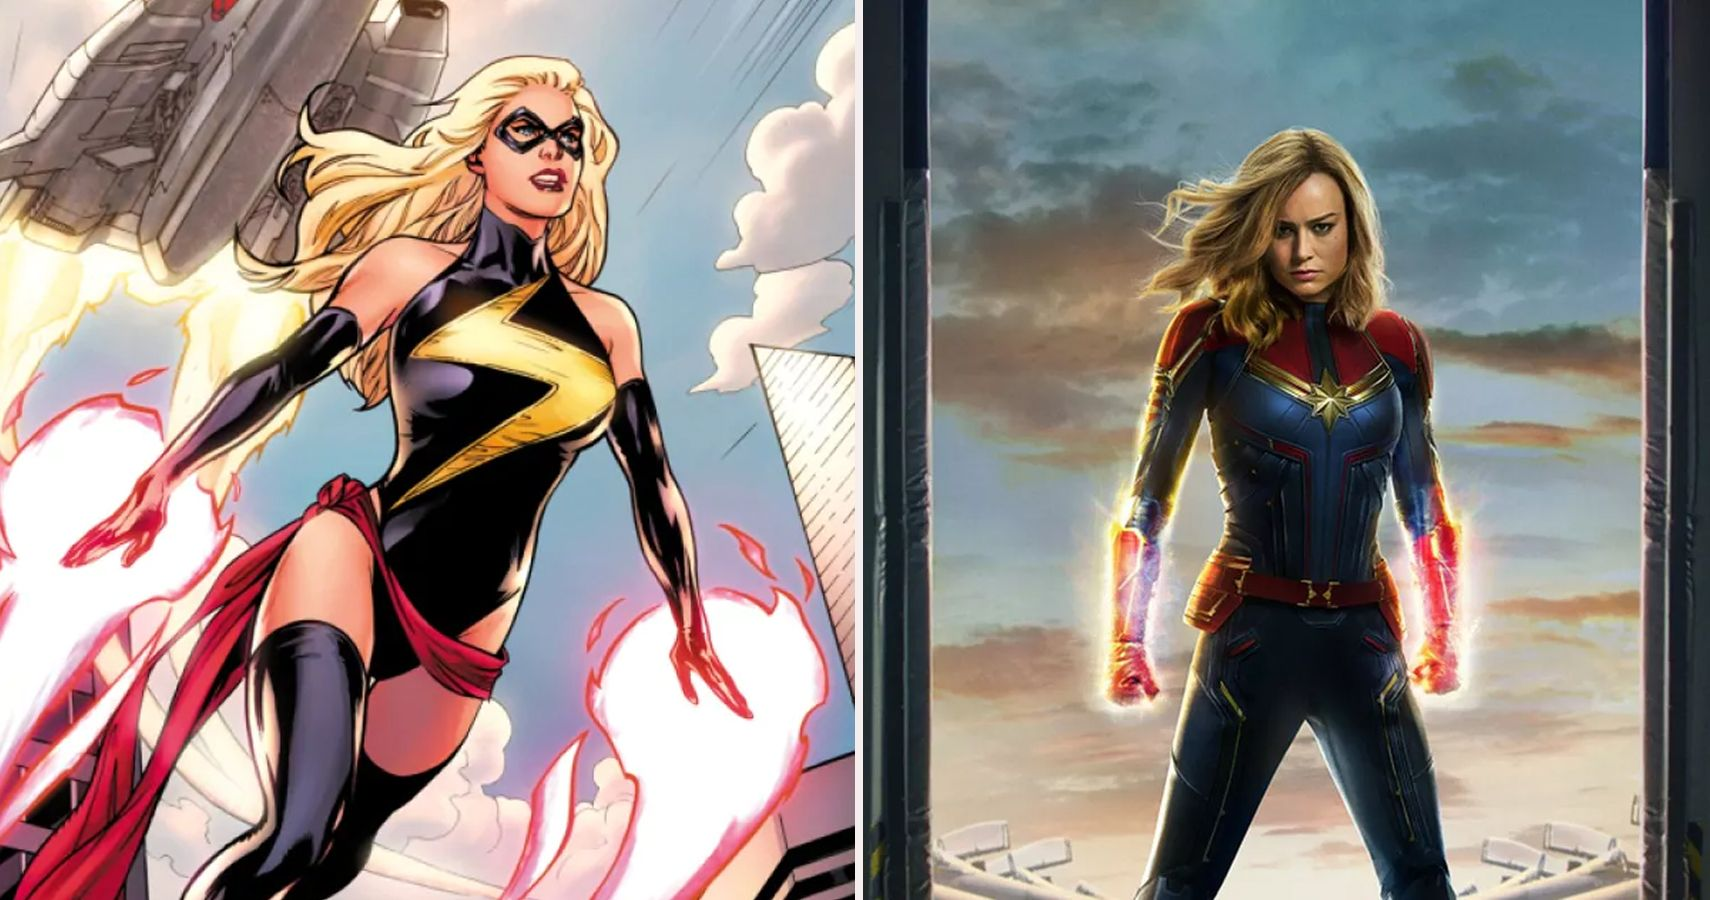 Captain Marvel Her 5 Best Costumes 5 We Can T Stand To Look At Target/holiday shop/captain marvel costume (3291)‎. captain marvel her 5 best costumes